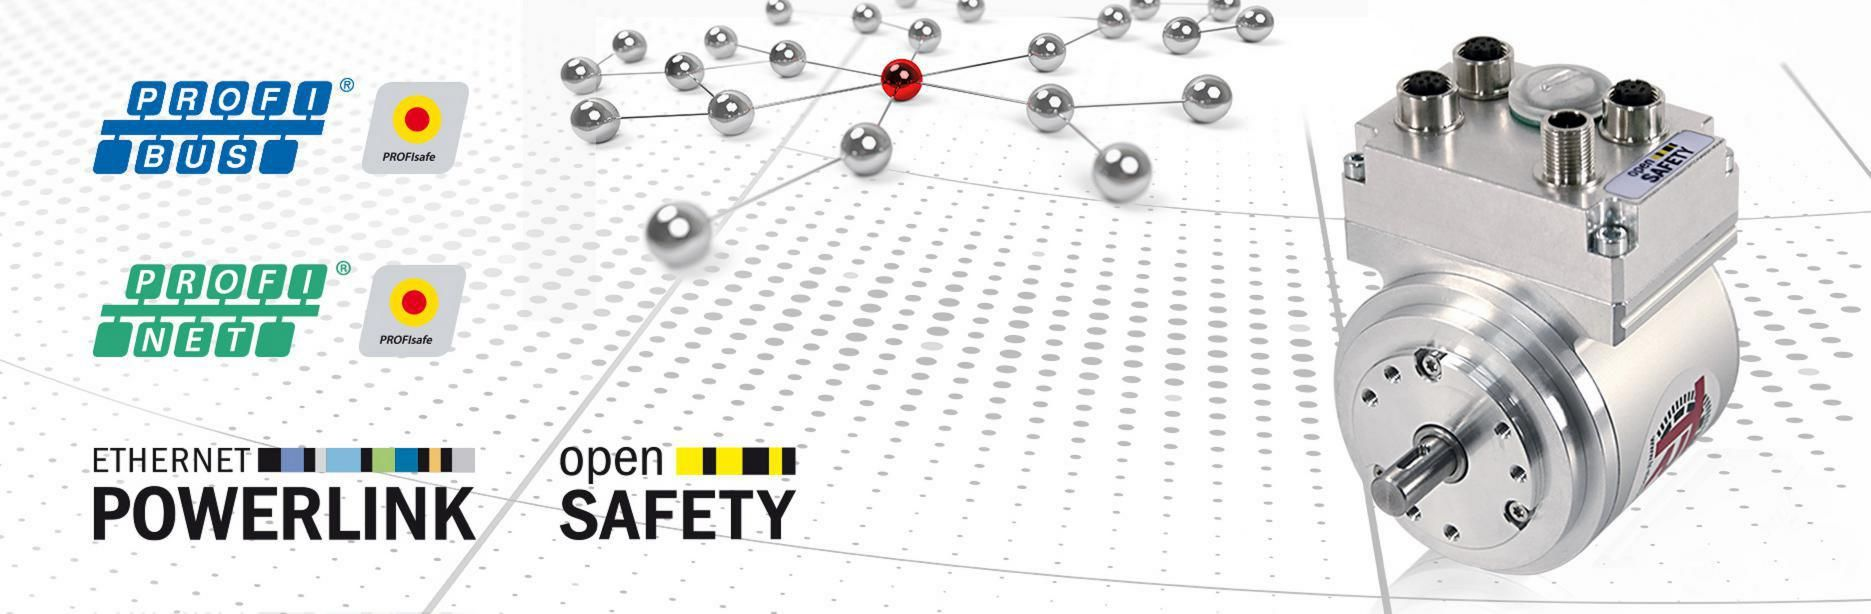 Safety is now open with TR